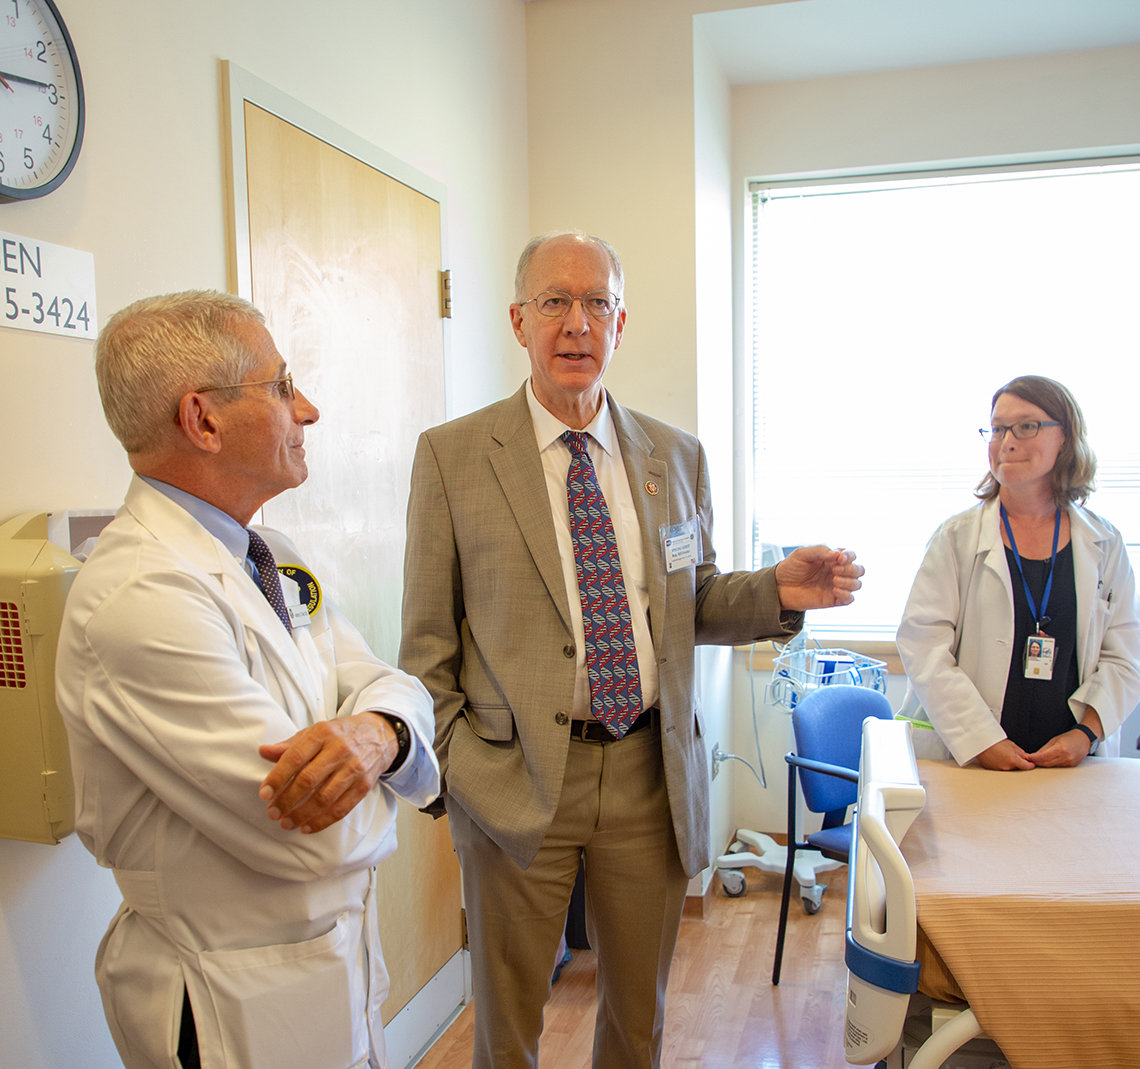 Dr. Fauci and Dr. Freeman talk with Rep. Bill Foster at NIAID's primary immune deficiency clinic.